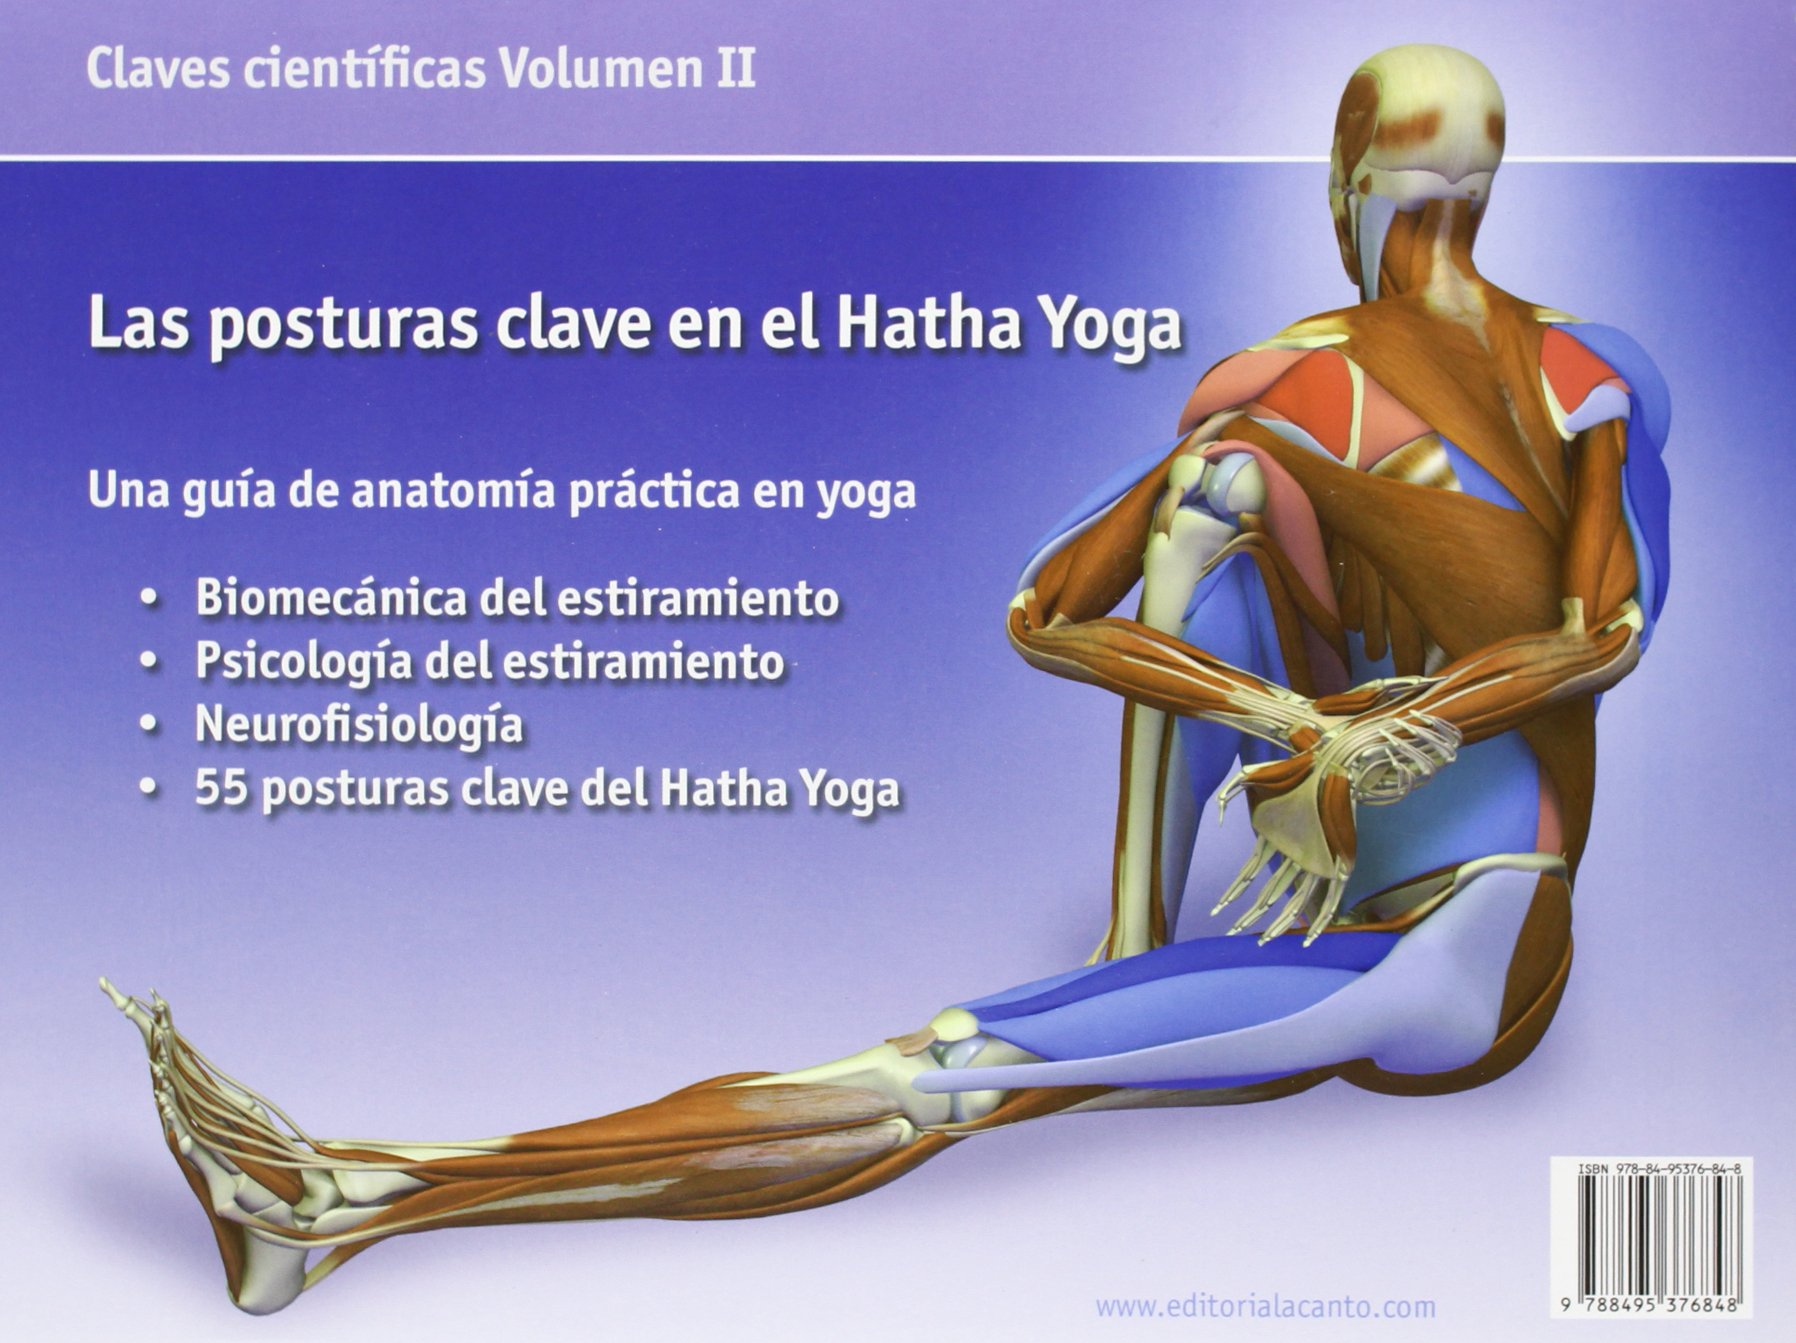 Las posturas clave en el hatha yoga: Amazon.es: Ray Long: Libros